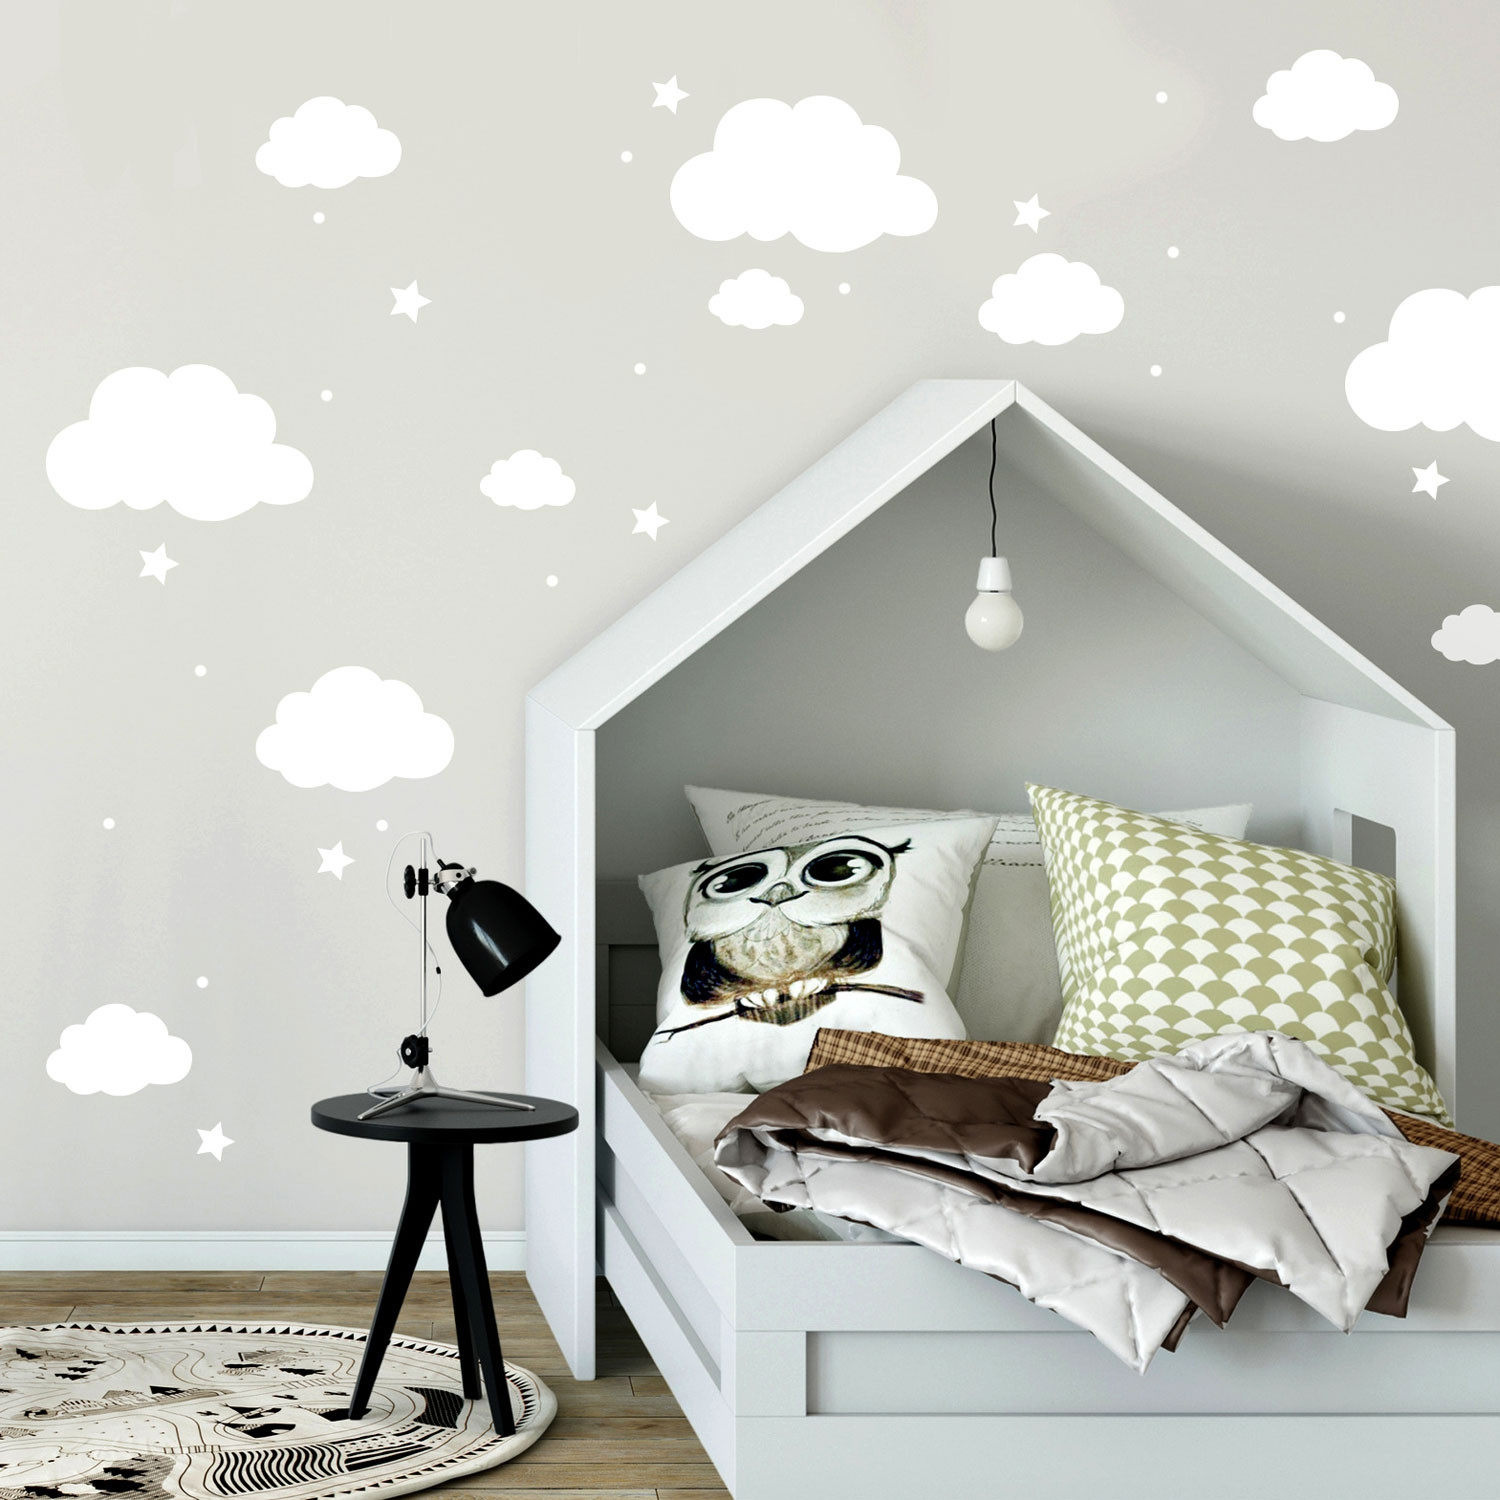 wandtattoo mit wolken sterne punkte in wei kinderzimmer. Black Bedroom Furniture Sets. Home Design Ideas